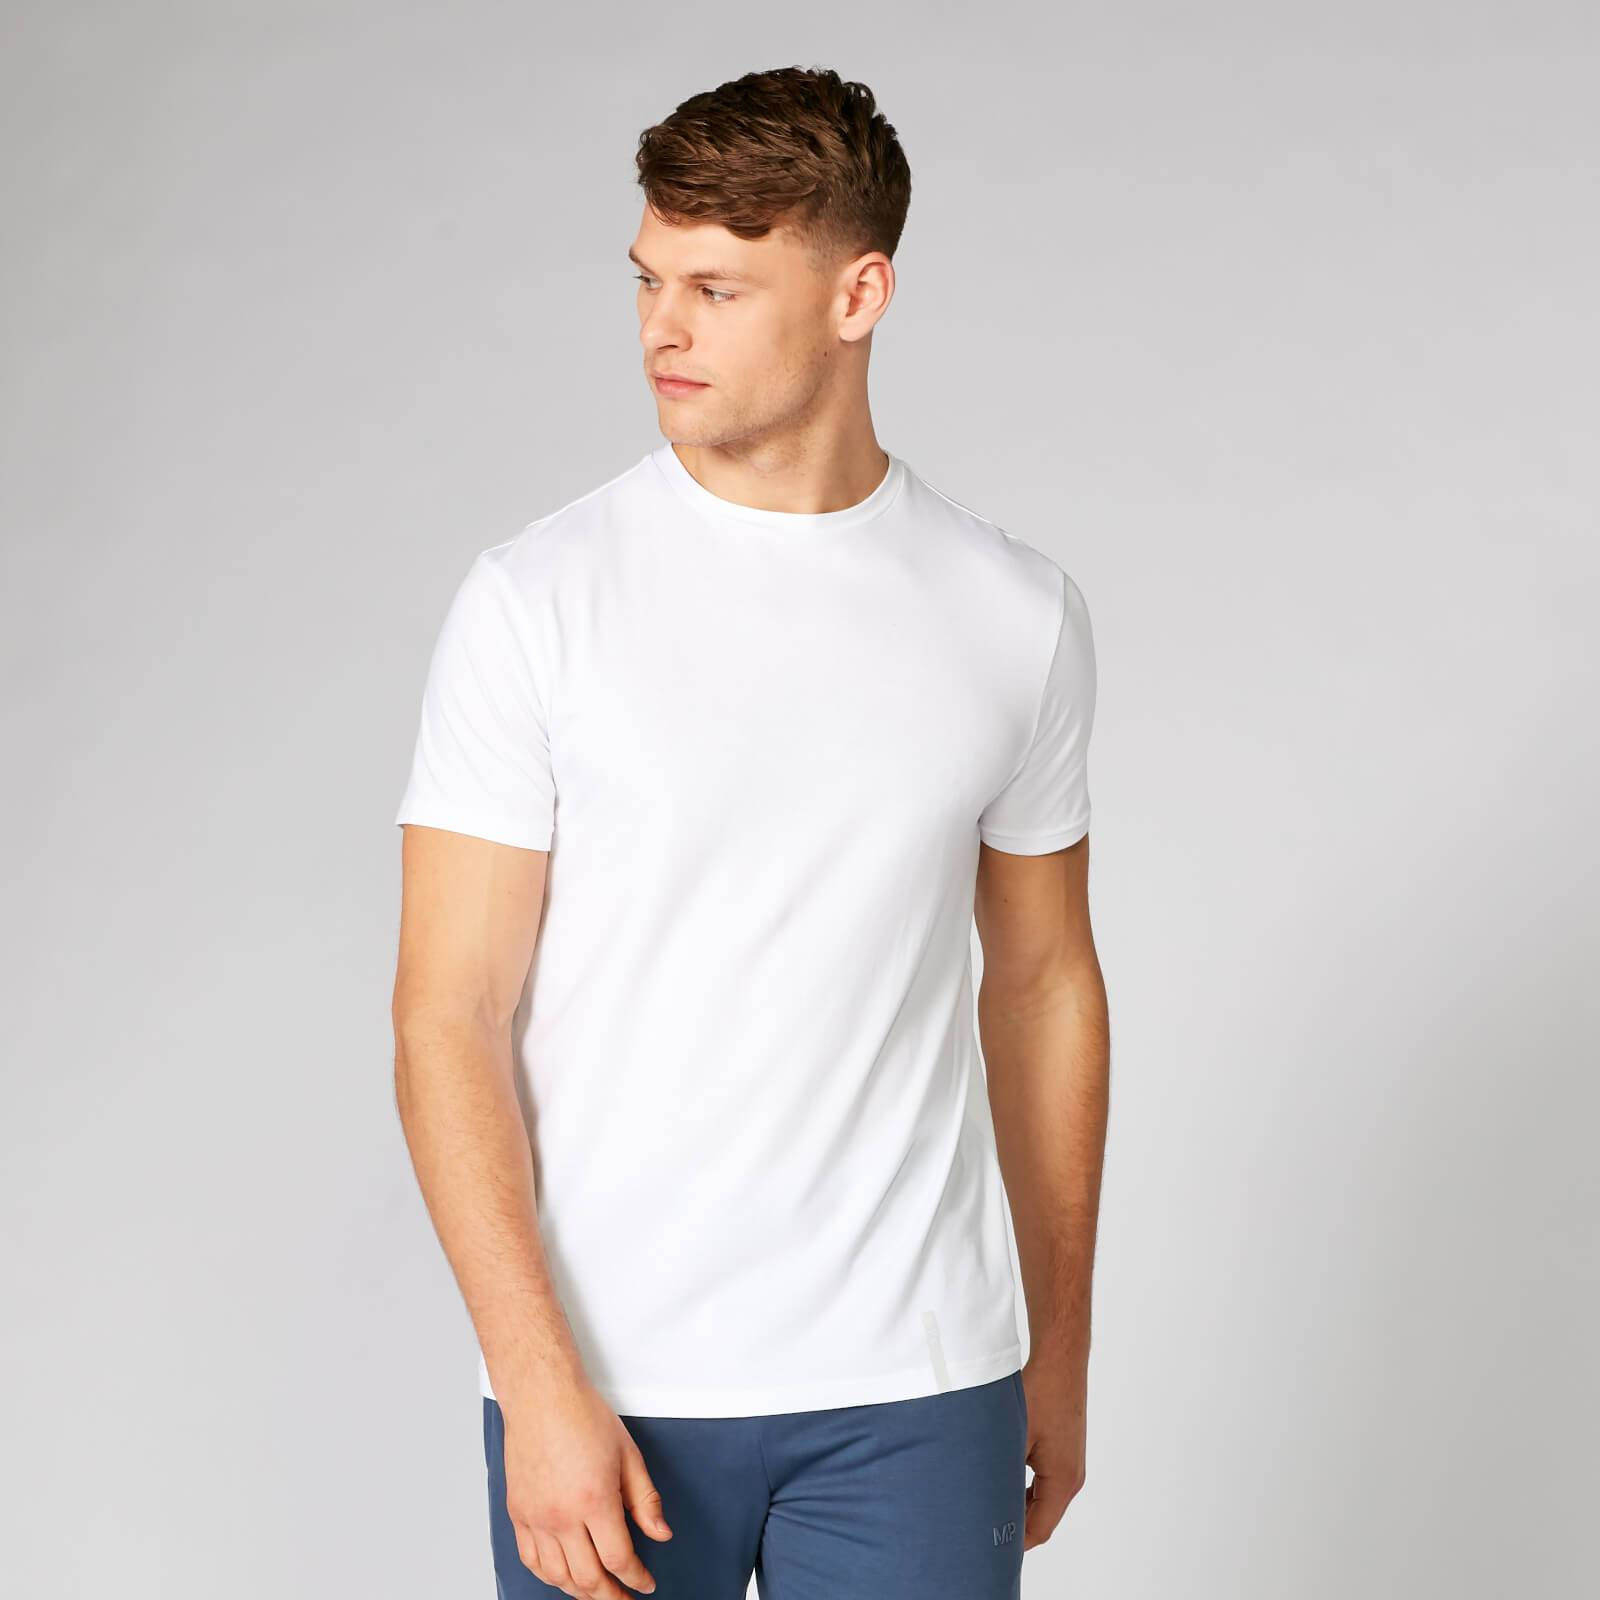 Myprotein Luxe Classic Crew T-Shirt - White - L